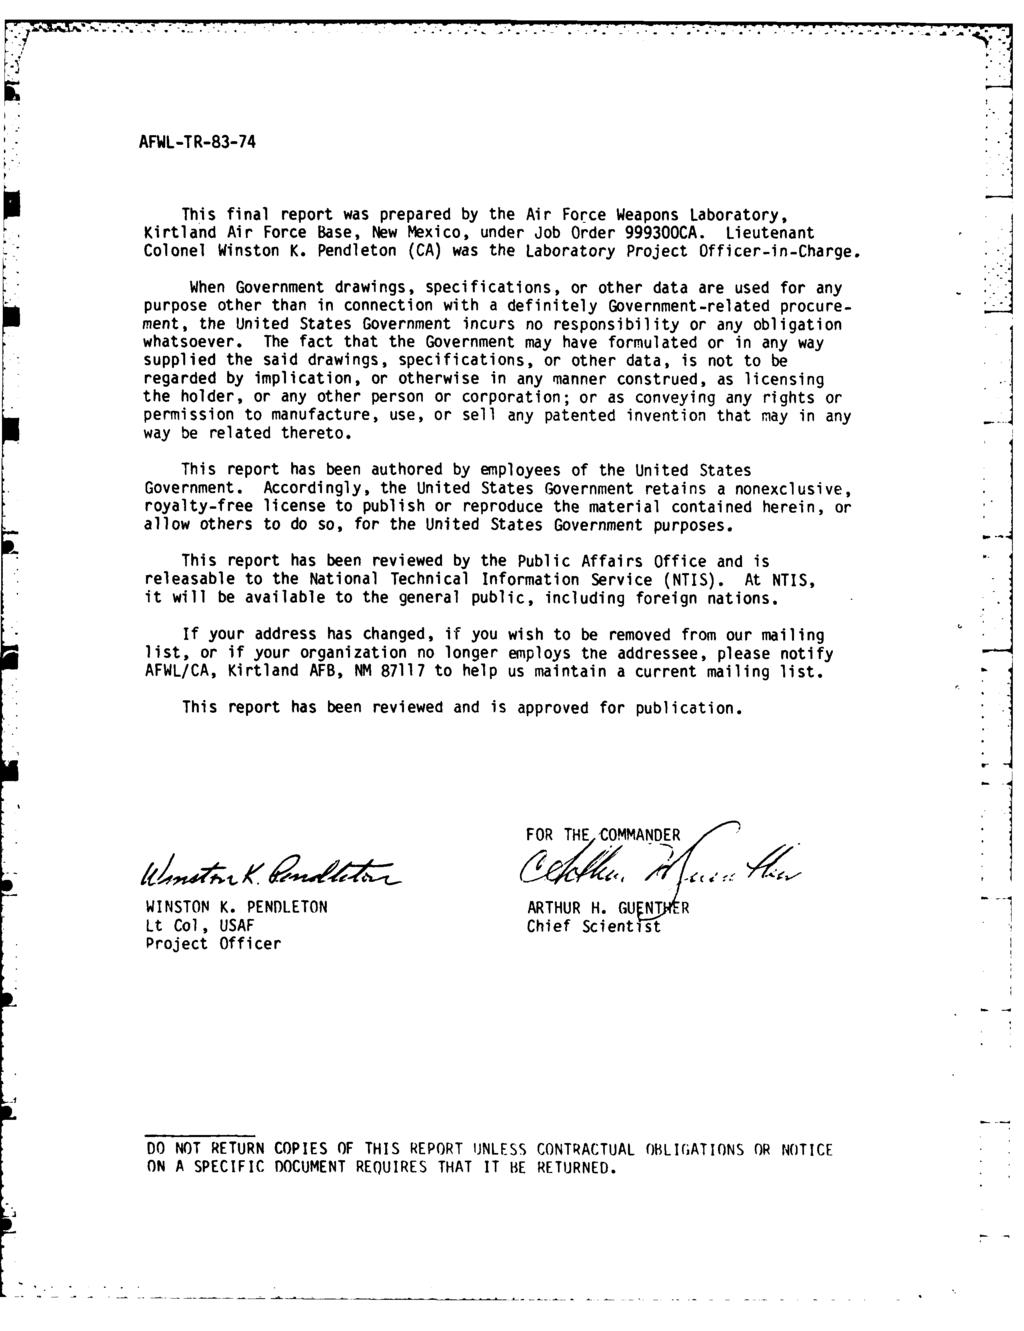 77 * AFWL-TR-83-74 This final report was prepared by the Air Force Weapons Laboratory, Kirtland Air Force Base, New Mexico, under Job Order 999300CA. Lieutenant Colonel Winston K.